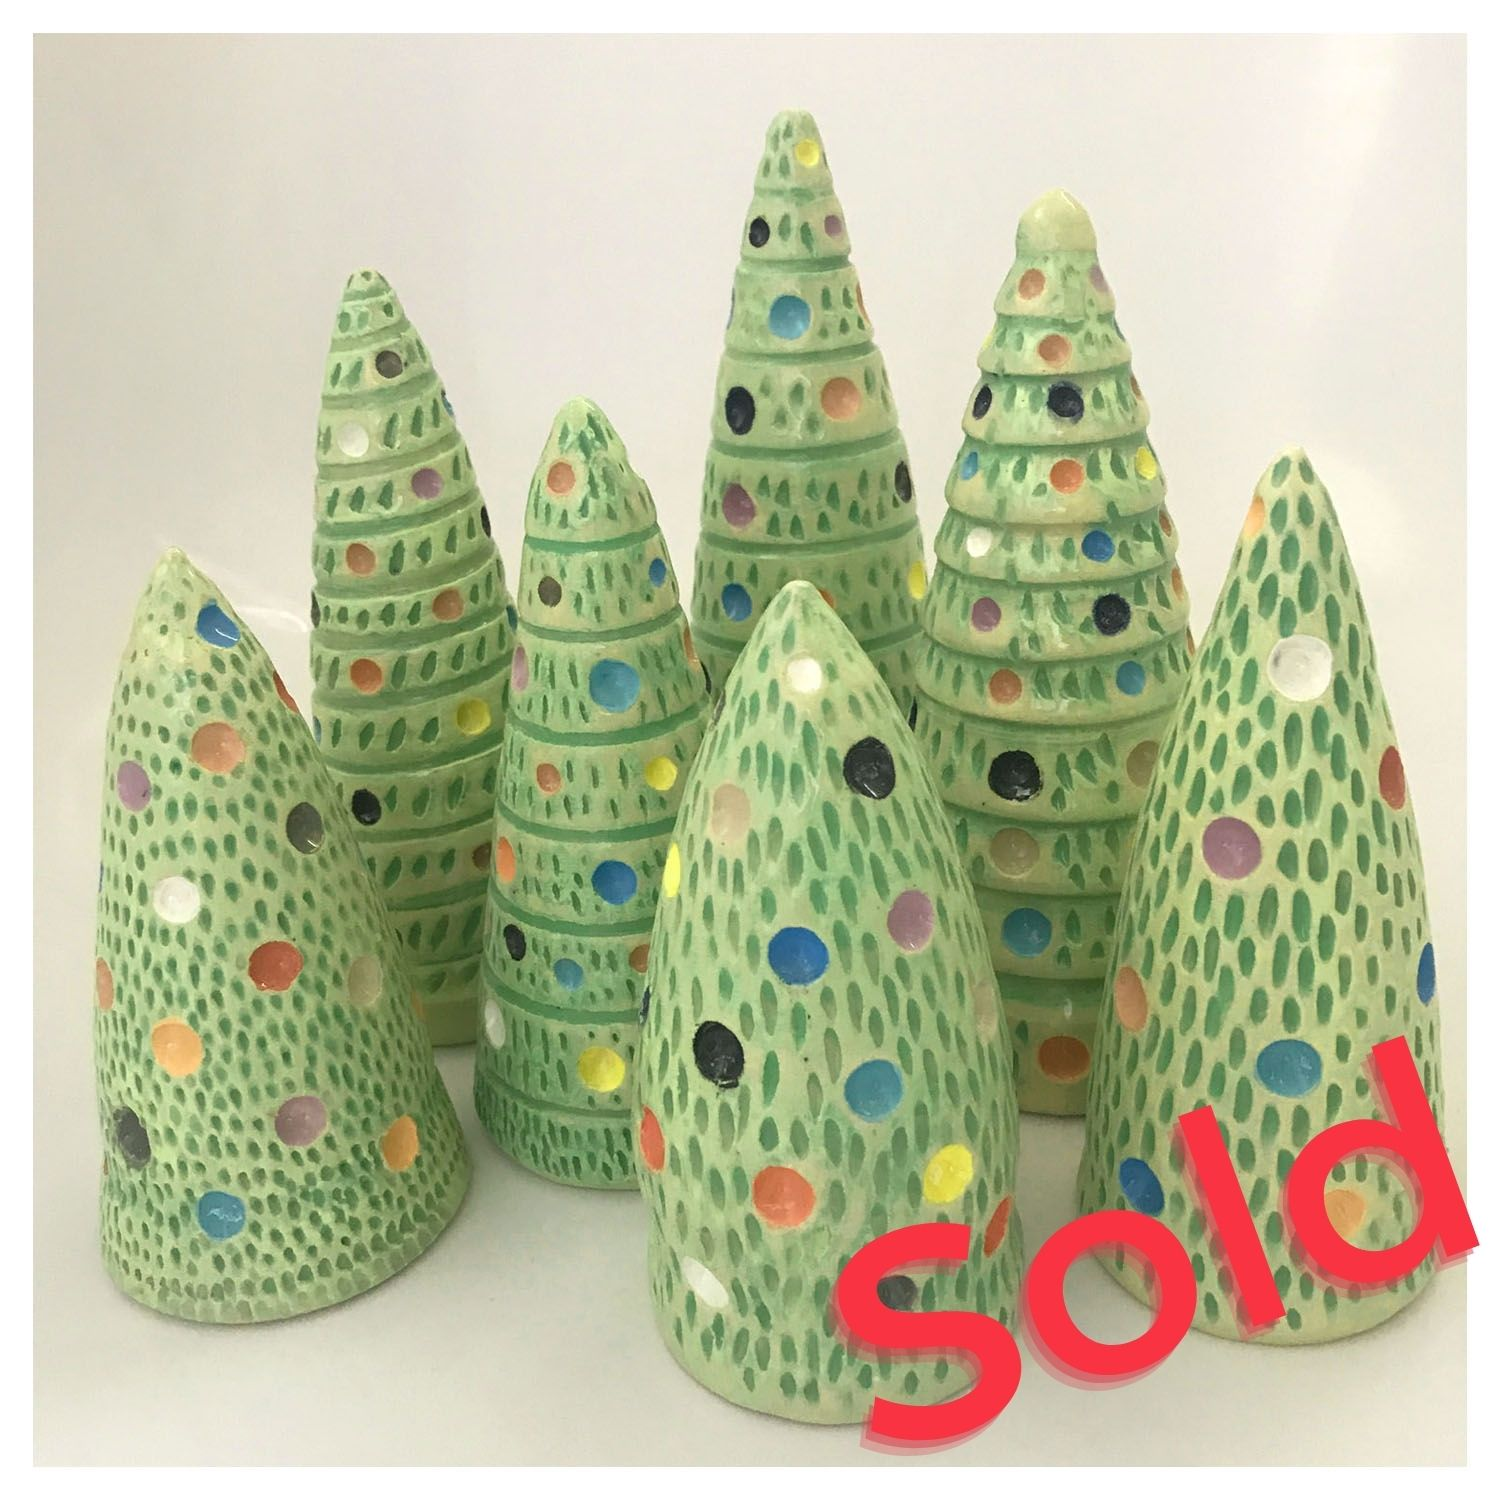 Nicole Lyster Christmas Trees Stoneware Ceramic up to 200mm high £35 Fun Colourful Decorative Ceramic Christmas Trees to Brighten up your home this festive Season